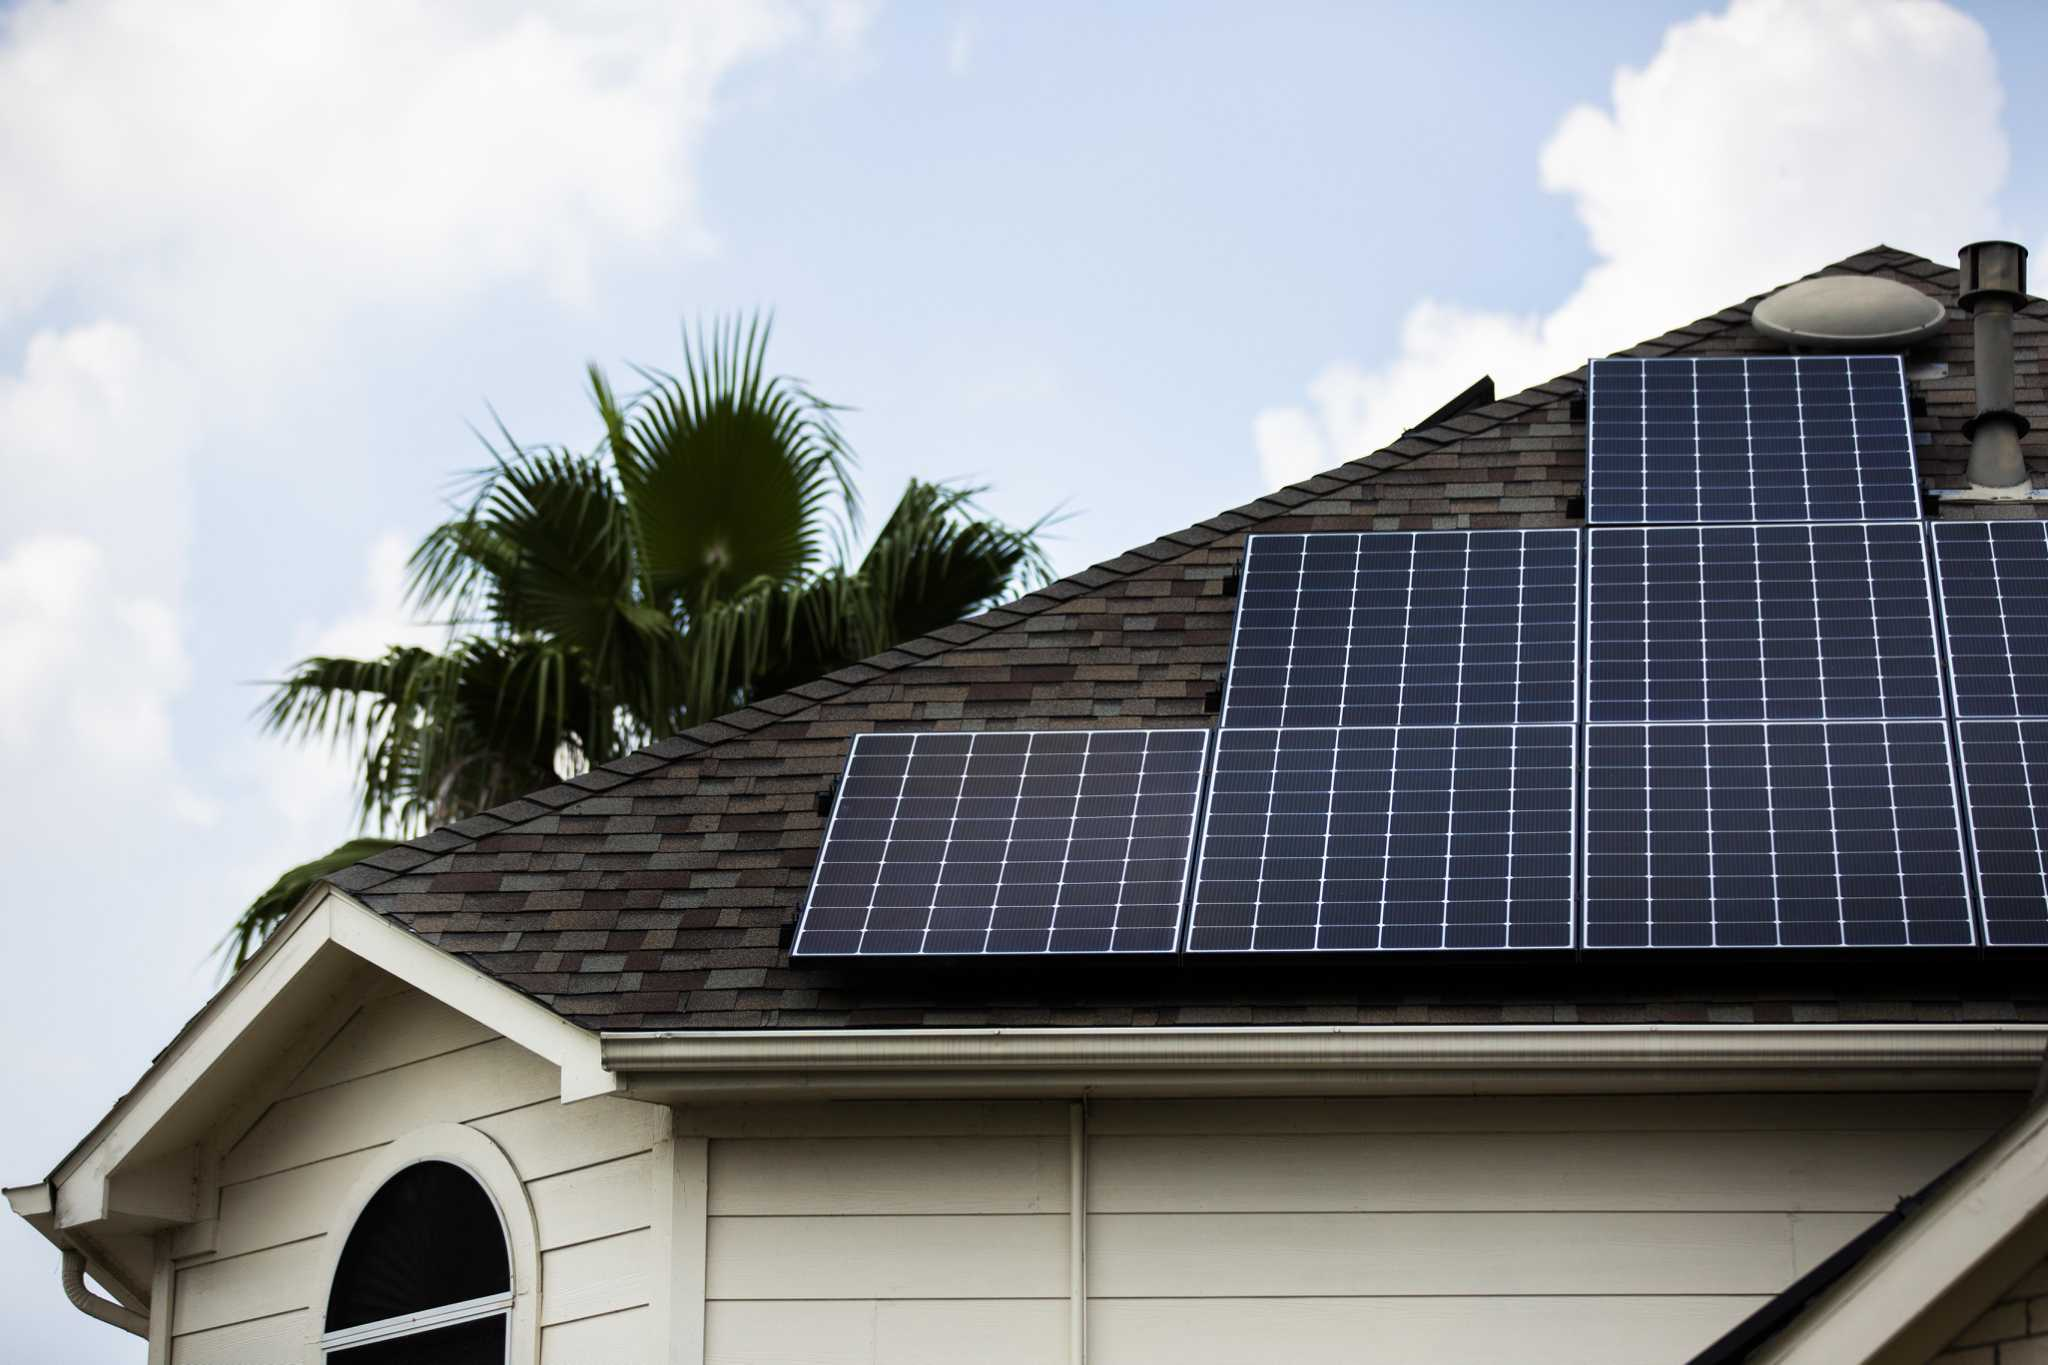 Houston has more than 100 solar-related companies